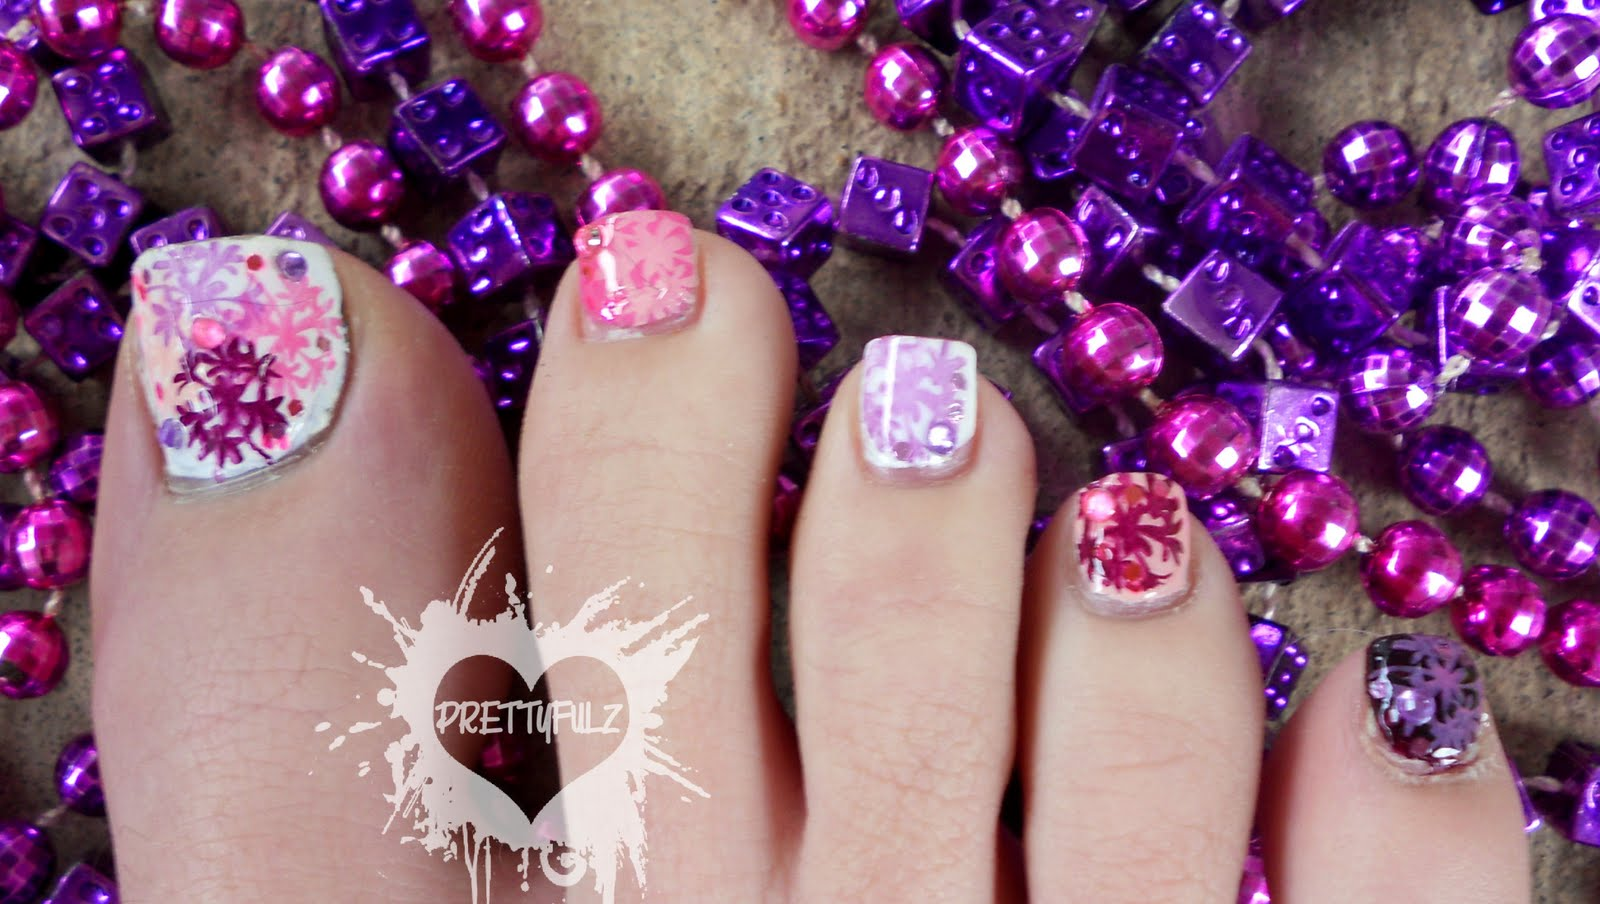 Prettyfulz Spring Time Pedicure Nail Art Design Bedding Inspired